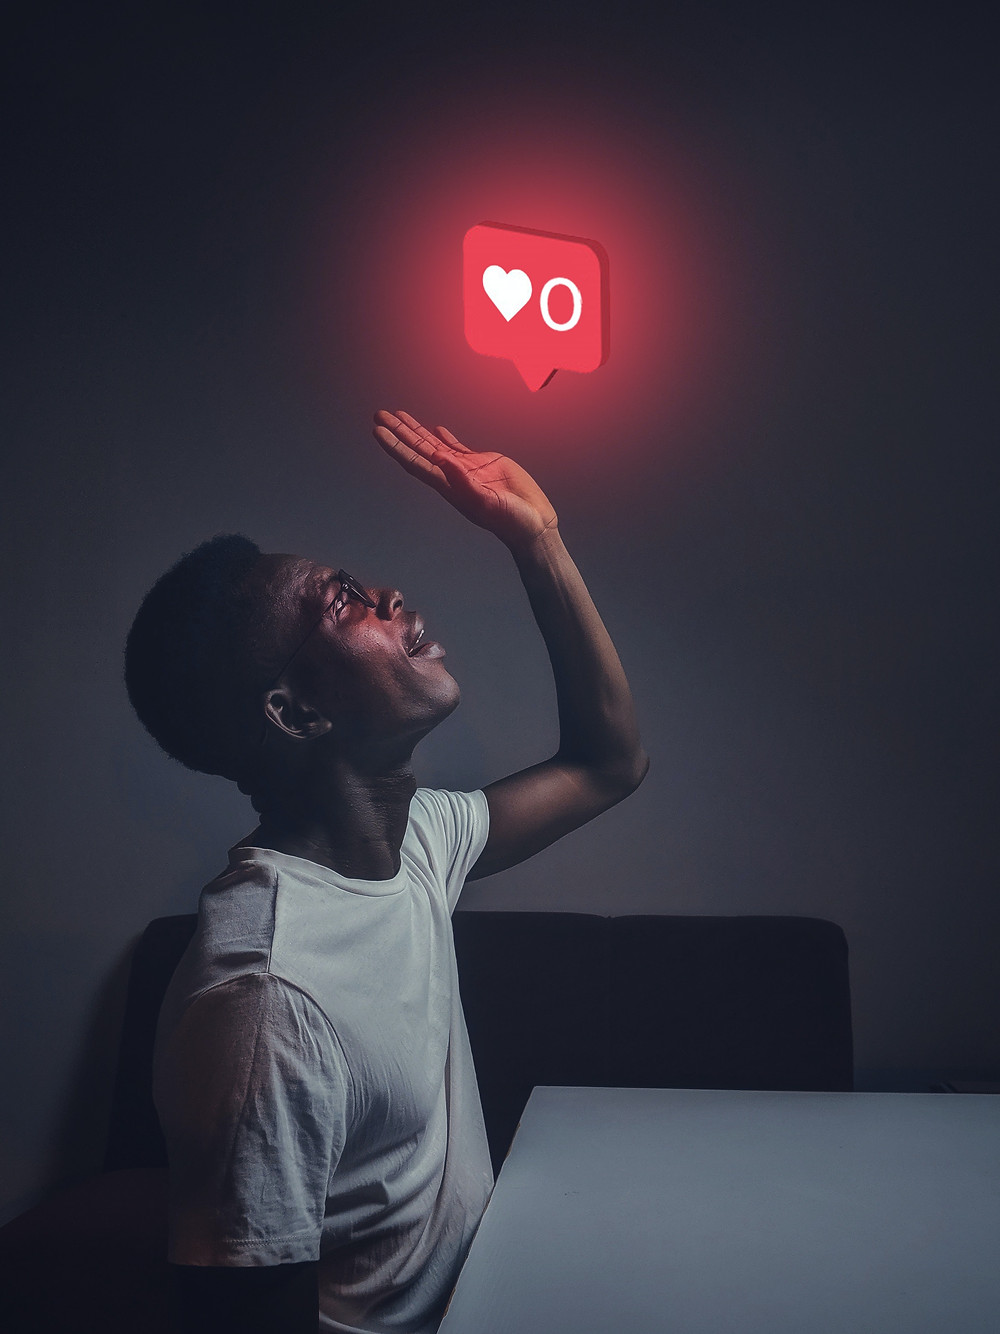 Stock photo of Black man looking upwards at a social media notification icon